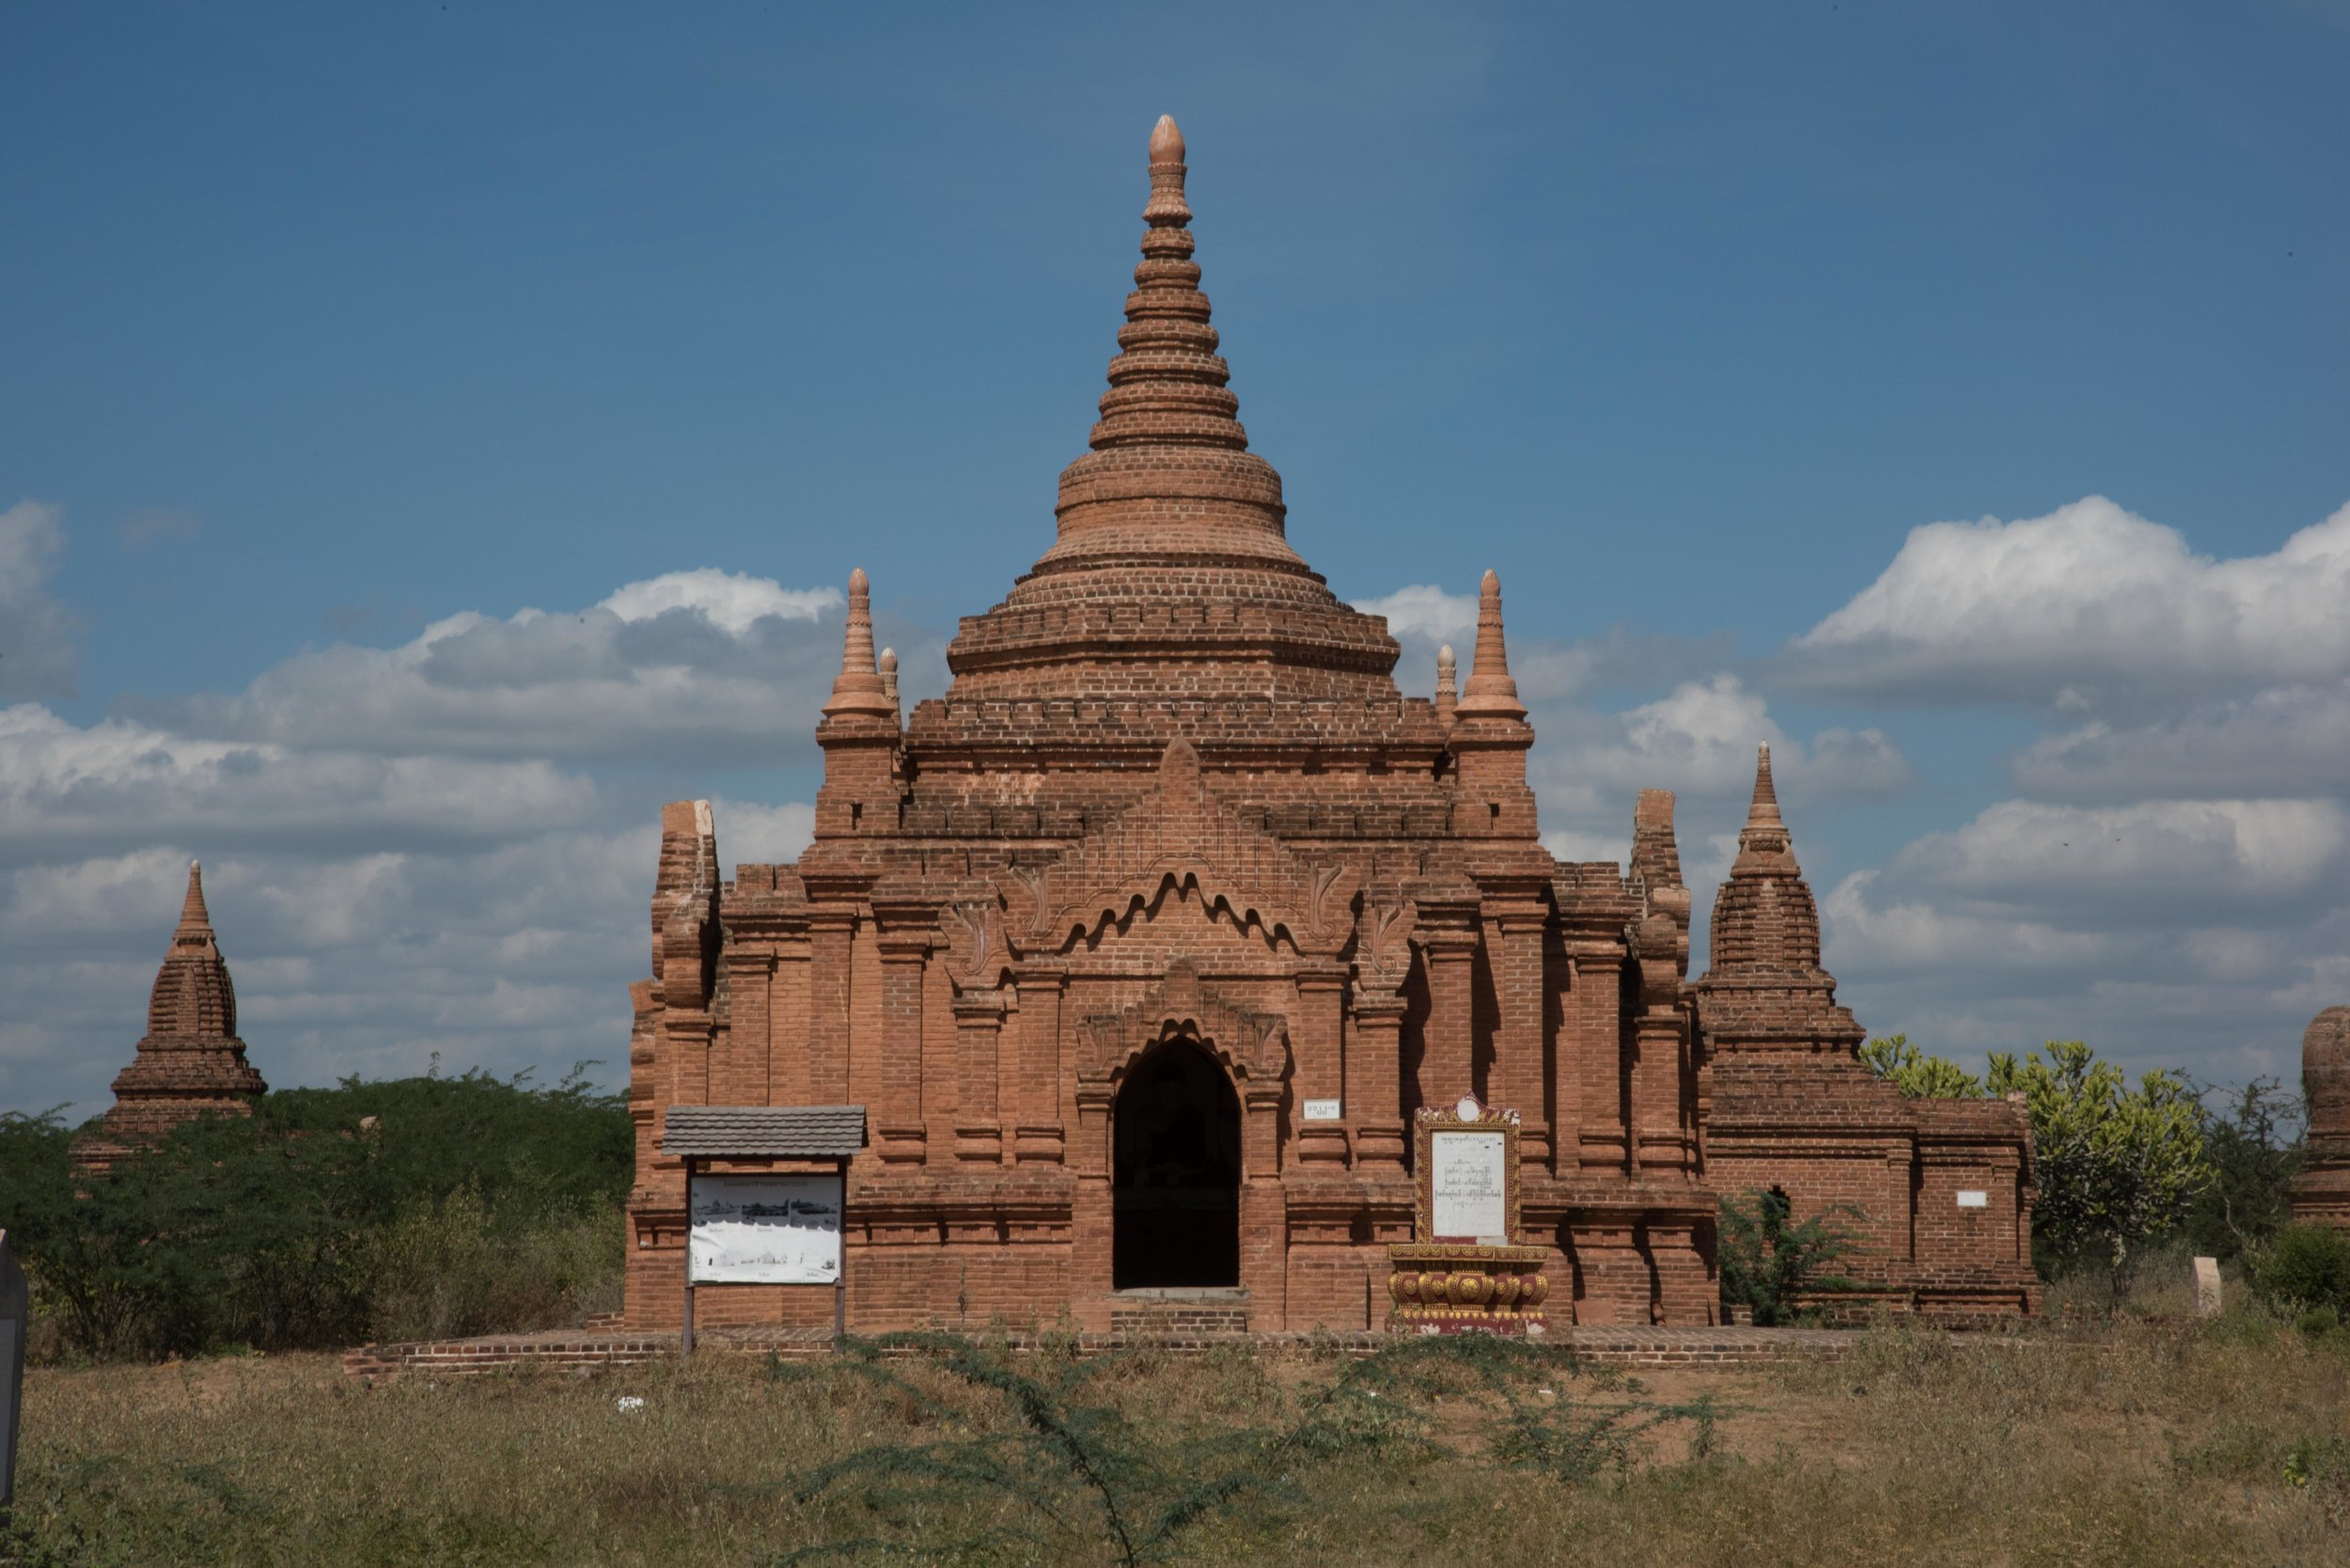 Pagoda near our hotel, New Bagan, Myanmar, 20 Nov 2017.jpg